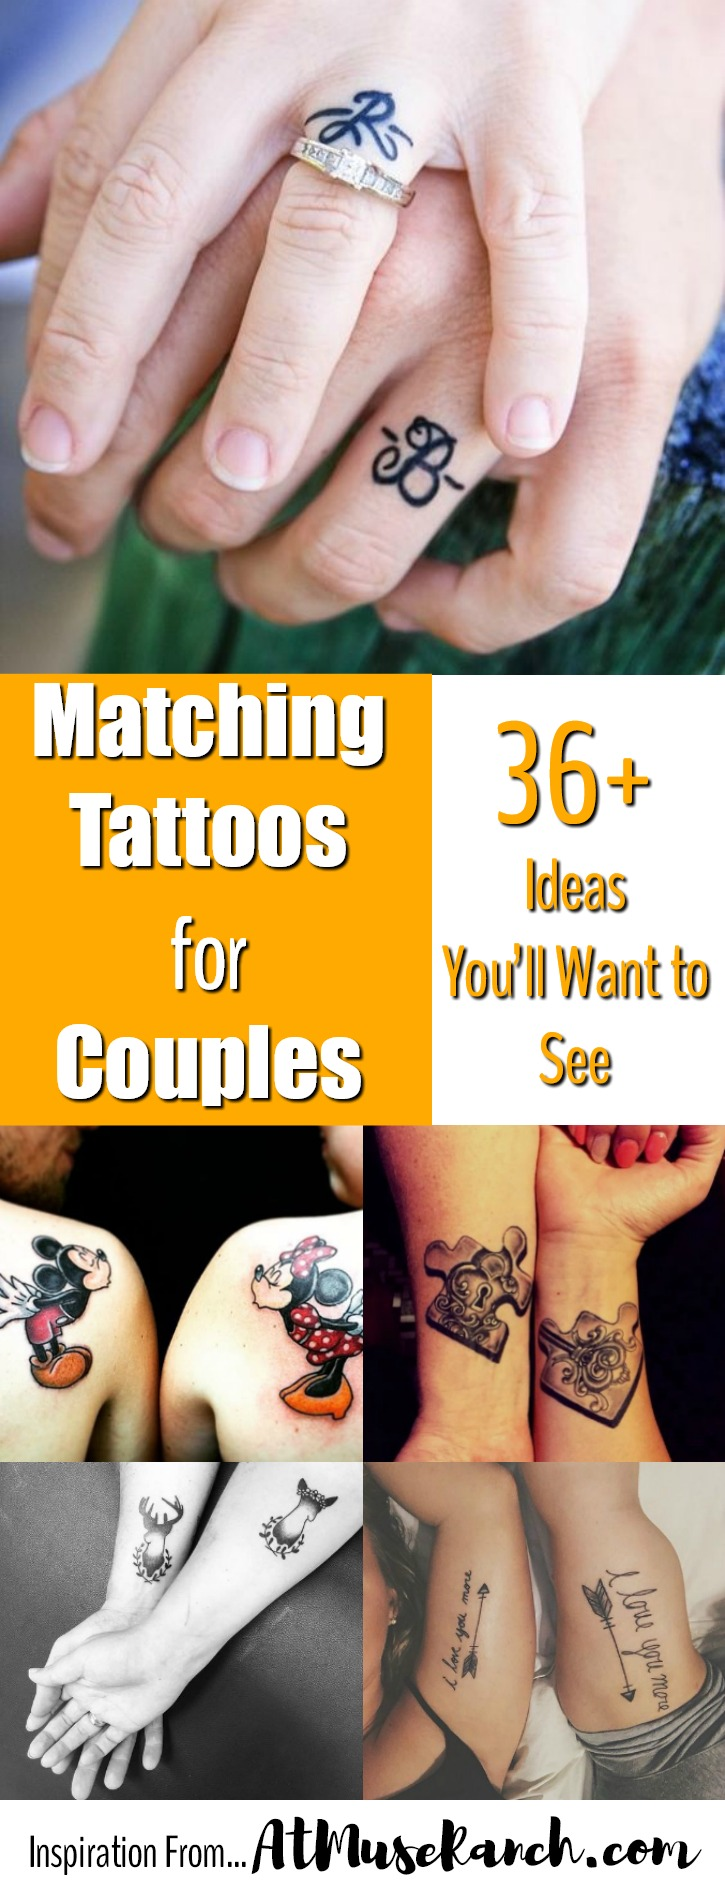 Always And Forever Soulmate Unique Couple Tattoos Best Tattoo Ideas